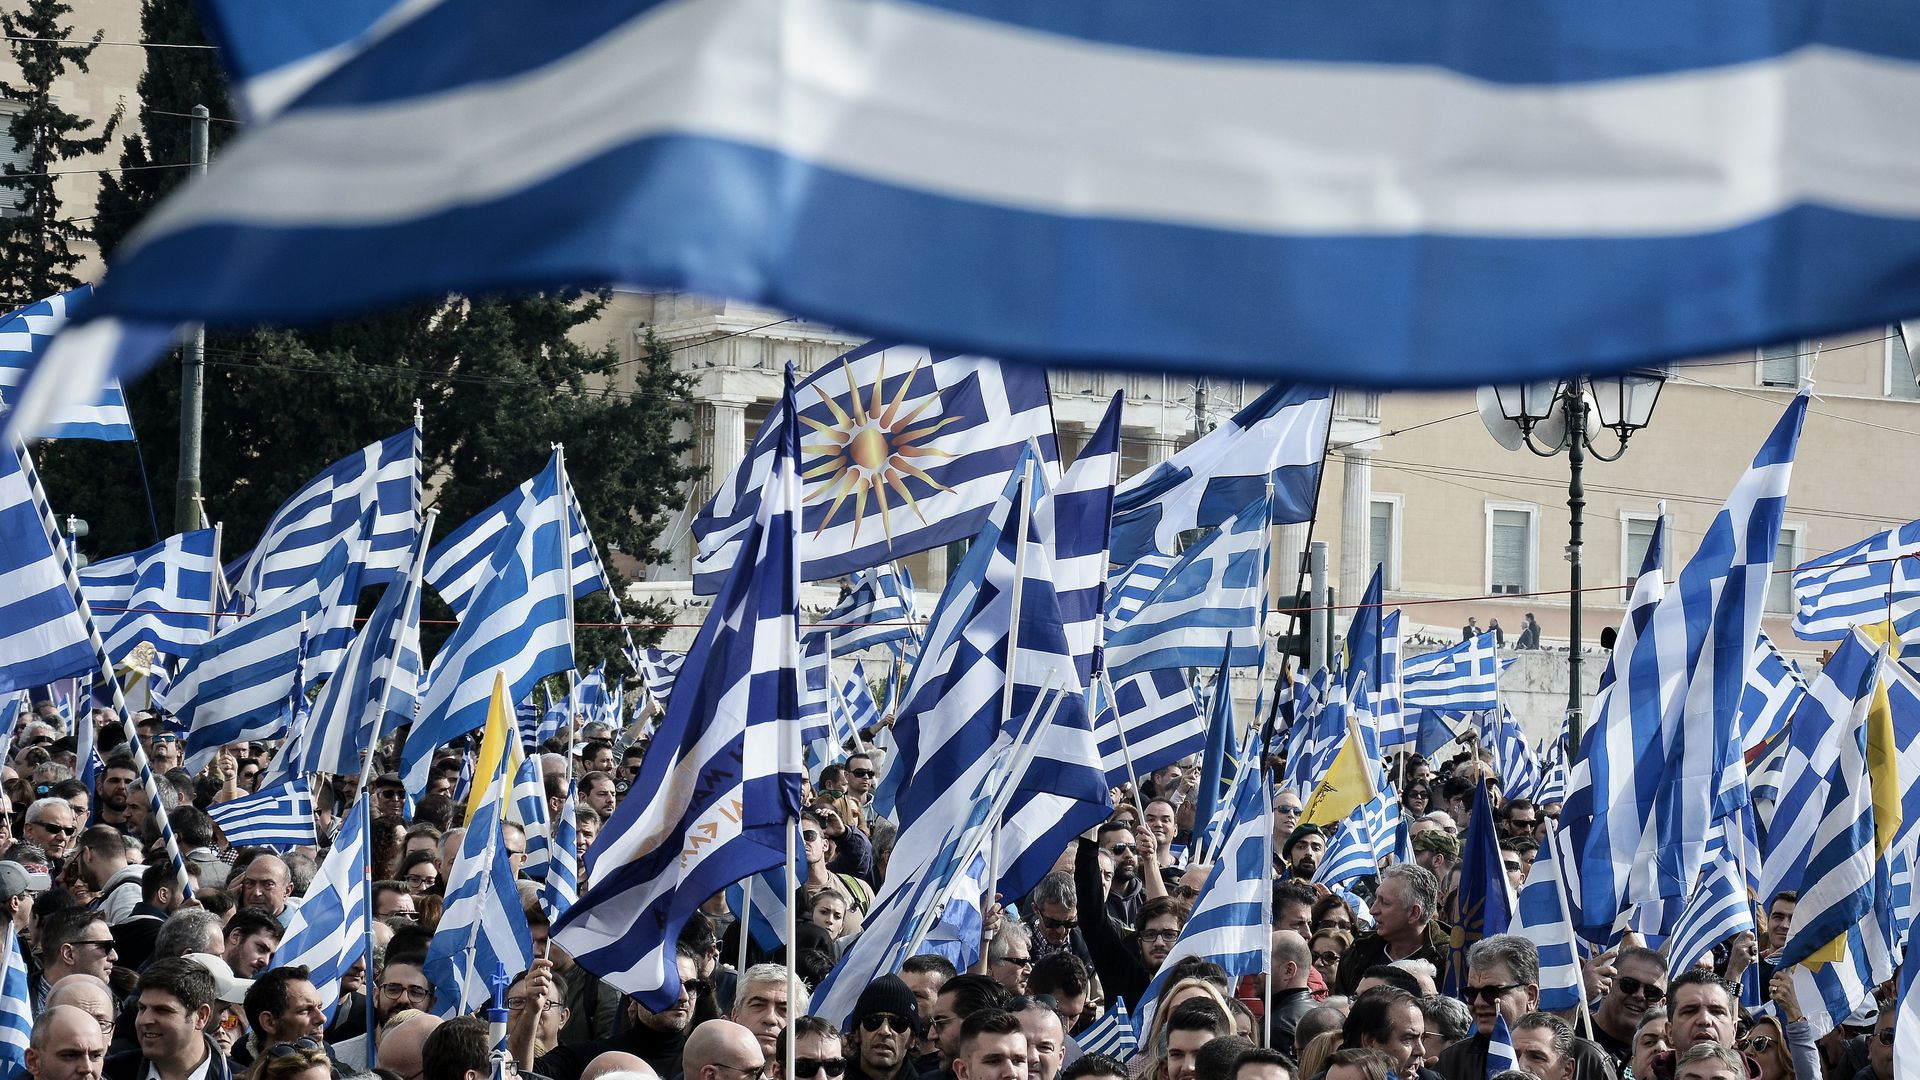 Greece's national flag.